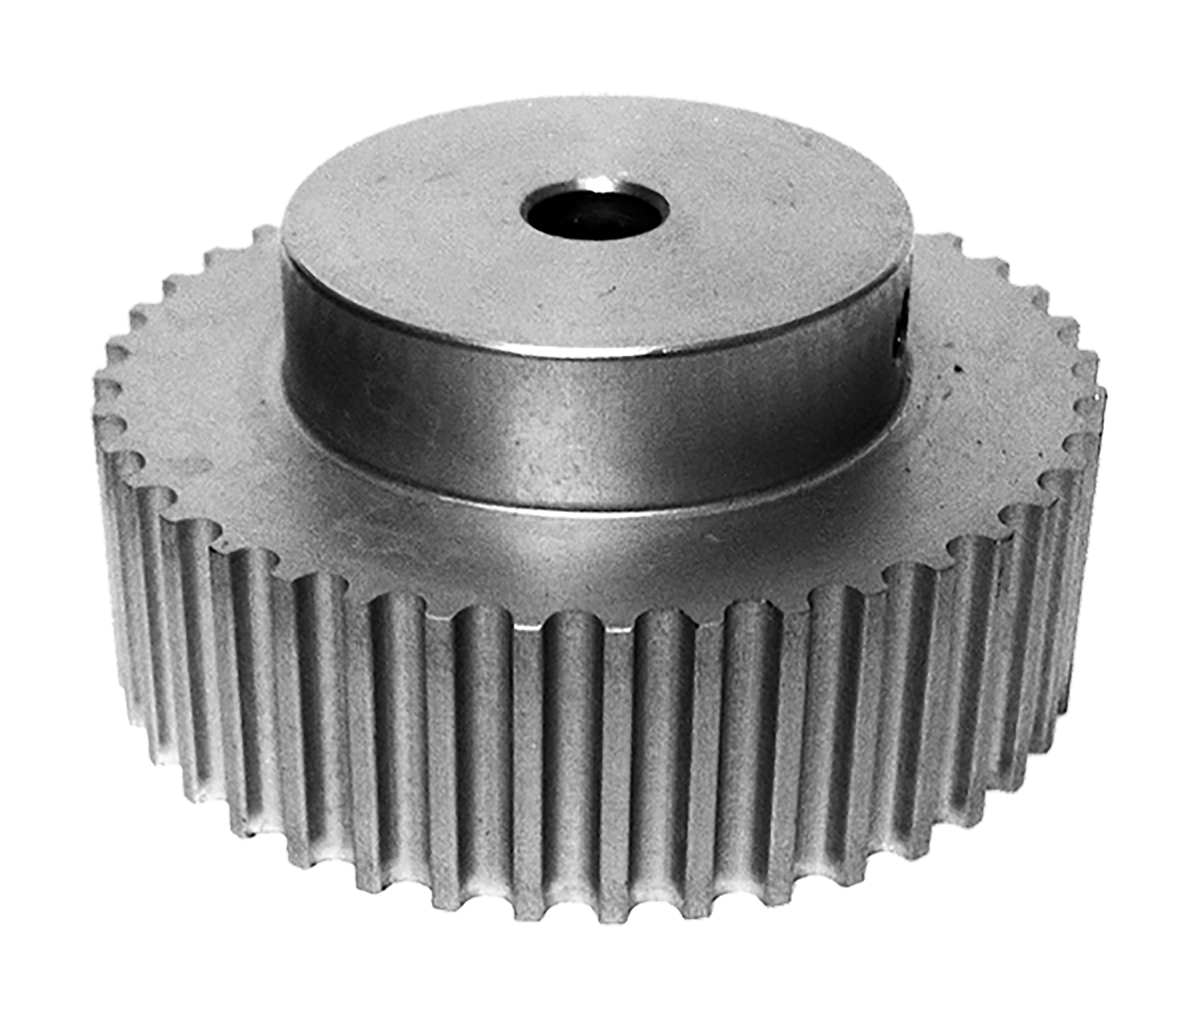 40-5M15-6A4 - Aluminum Powerhouse®HTD® Pulleys